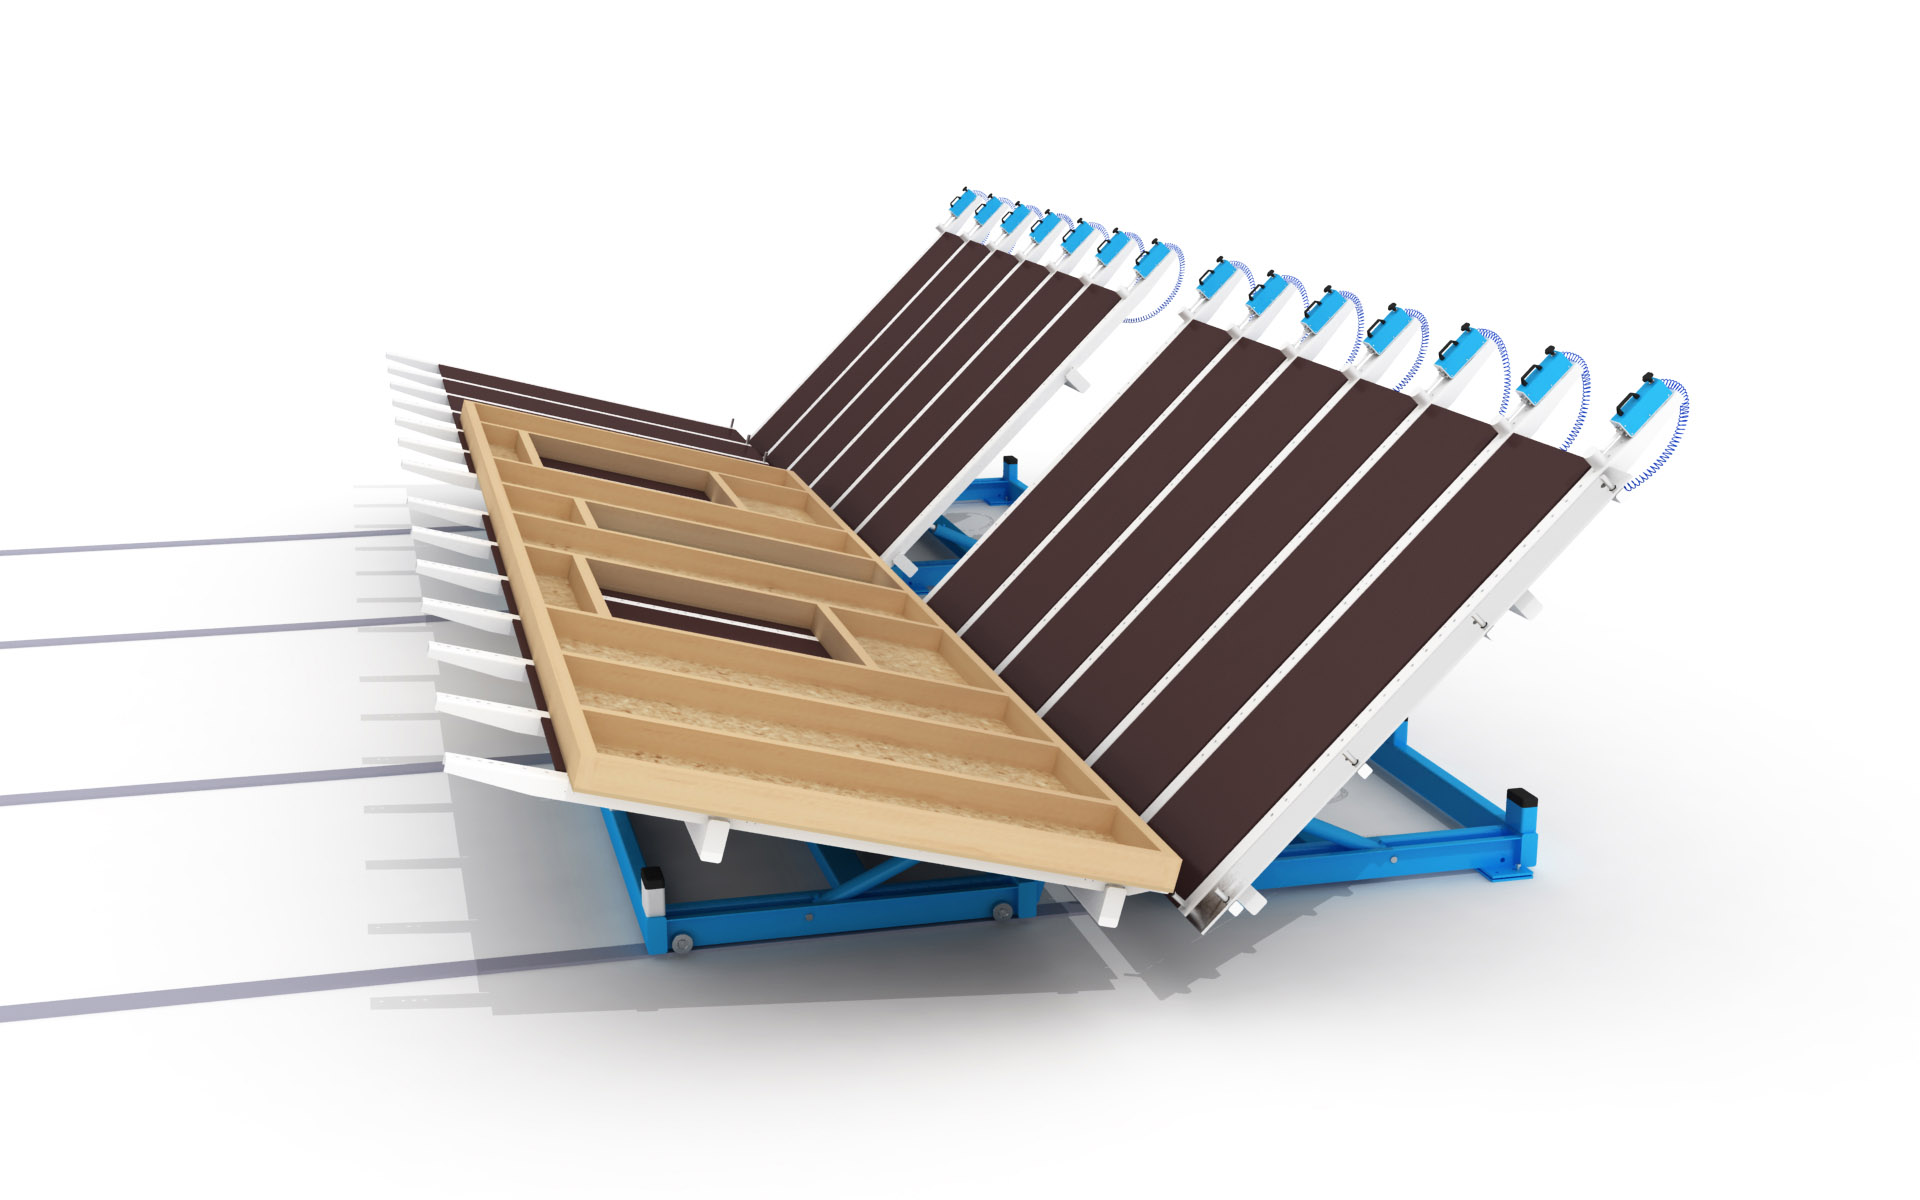 WING Robust Butterfly Lifting Table for Prefabricated Panel Construction